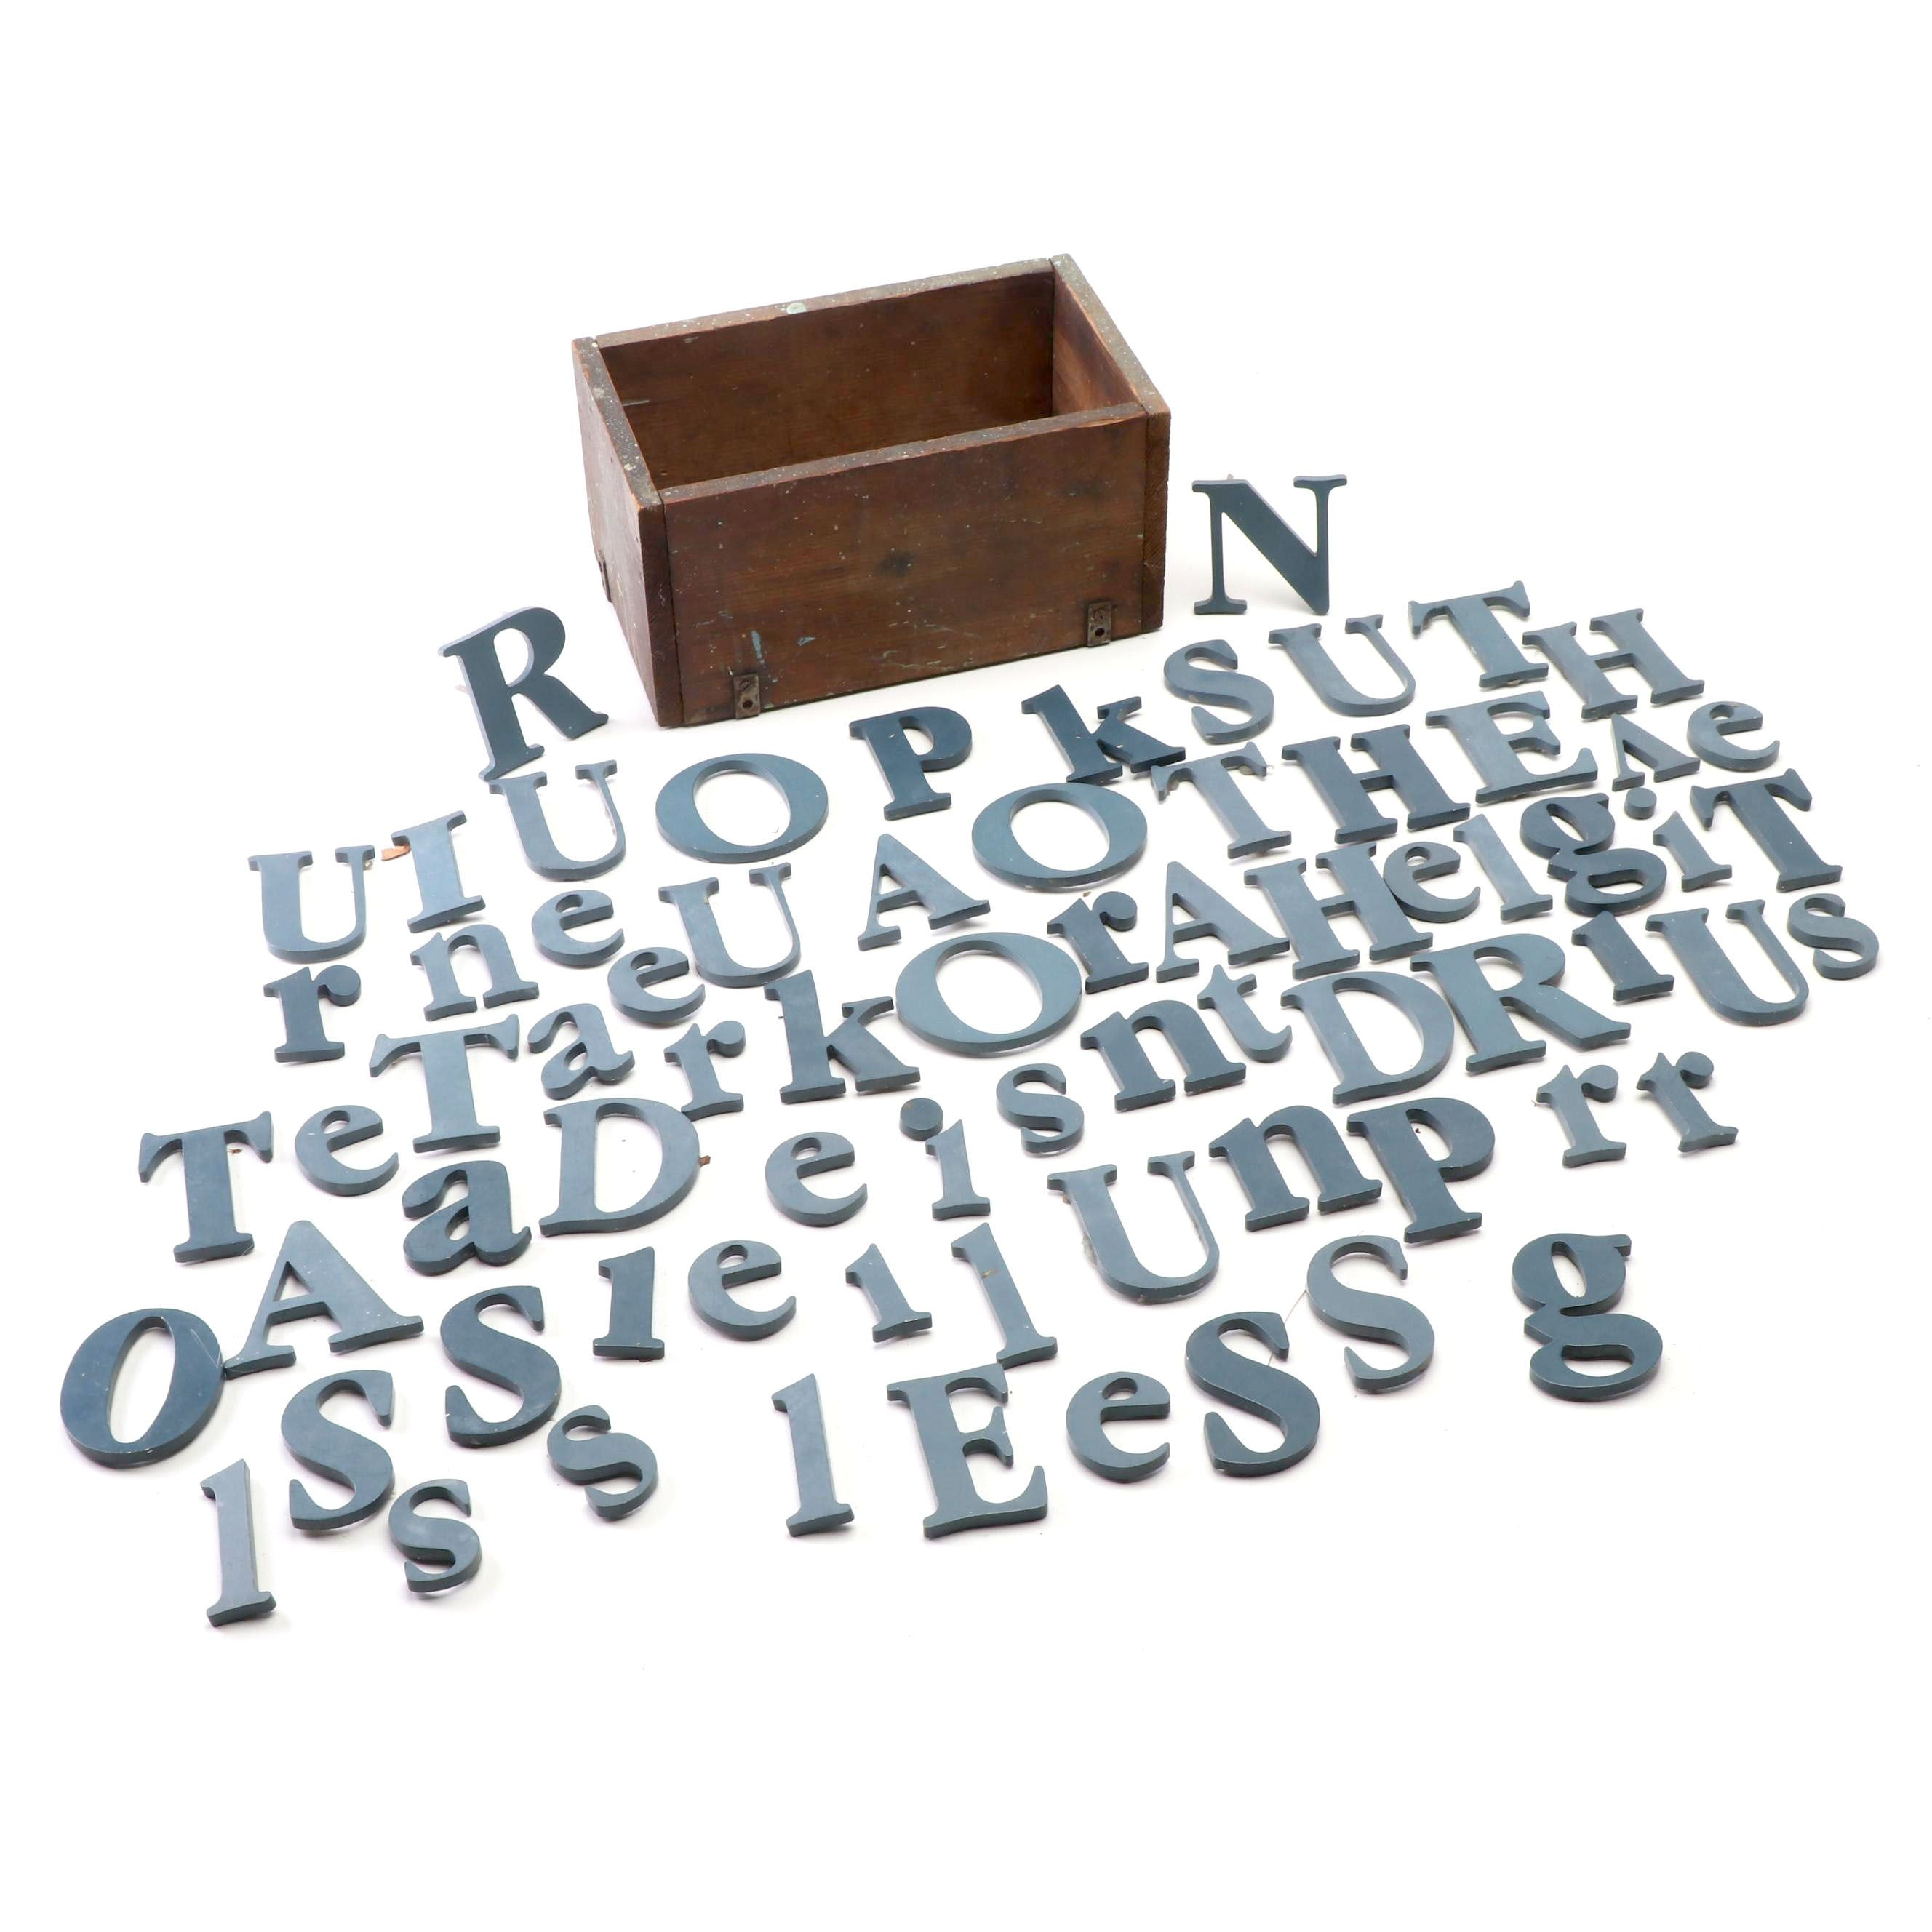 Vintage Lowercase and Uppercase Metal Letters in Wooden Box